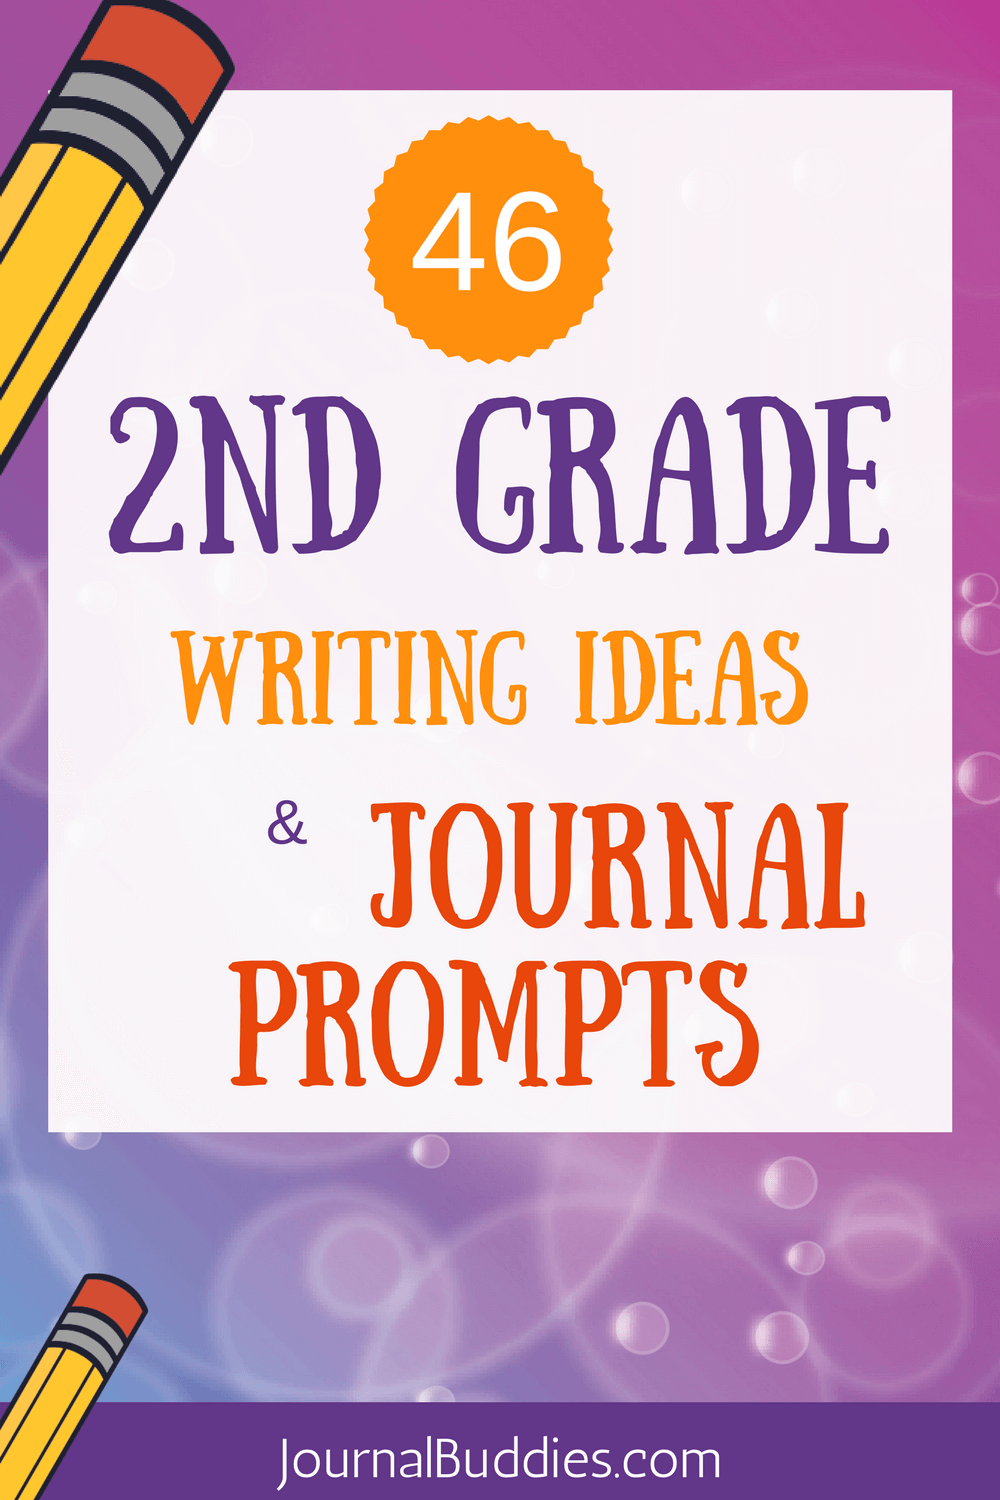 Take a look! These 2nd-grade writing ideas and journal are sure to ignite your students' imaginations!